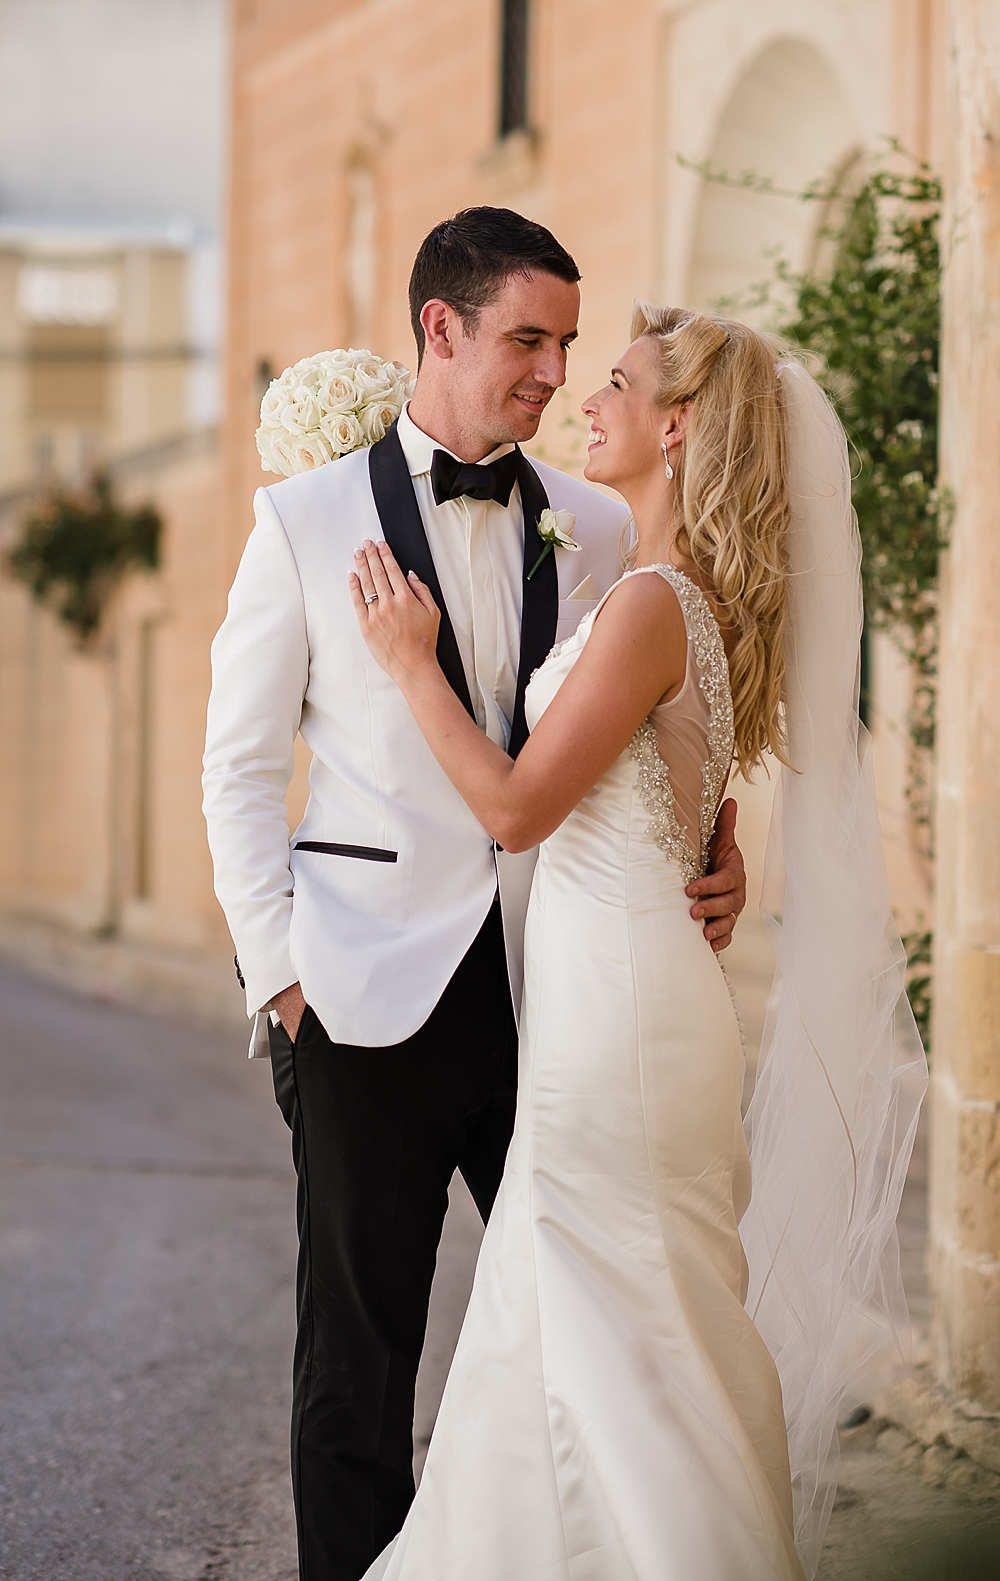 Wedding Photography - Villa Arrigo - Malta - Shane P. Watts